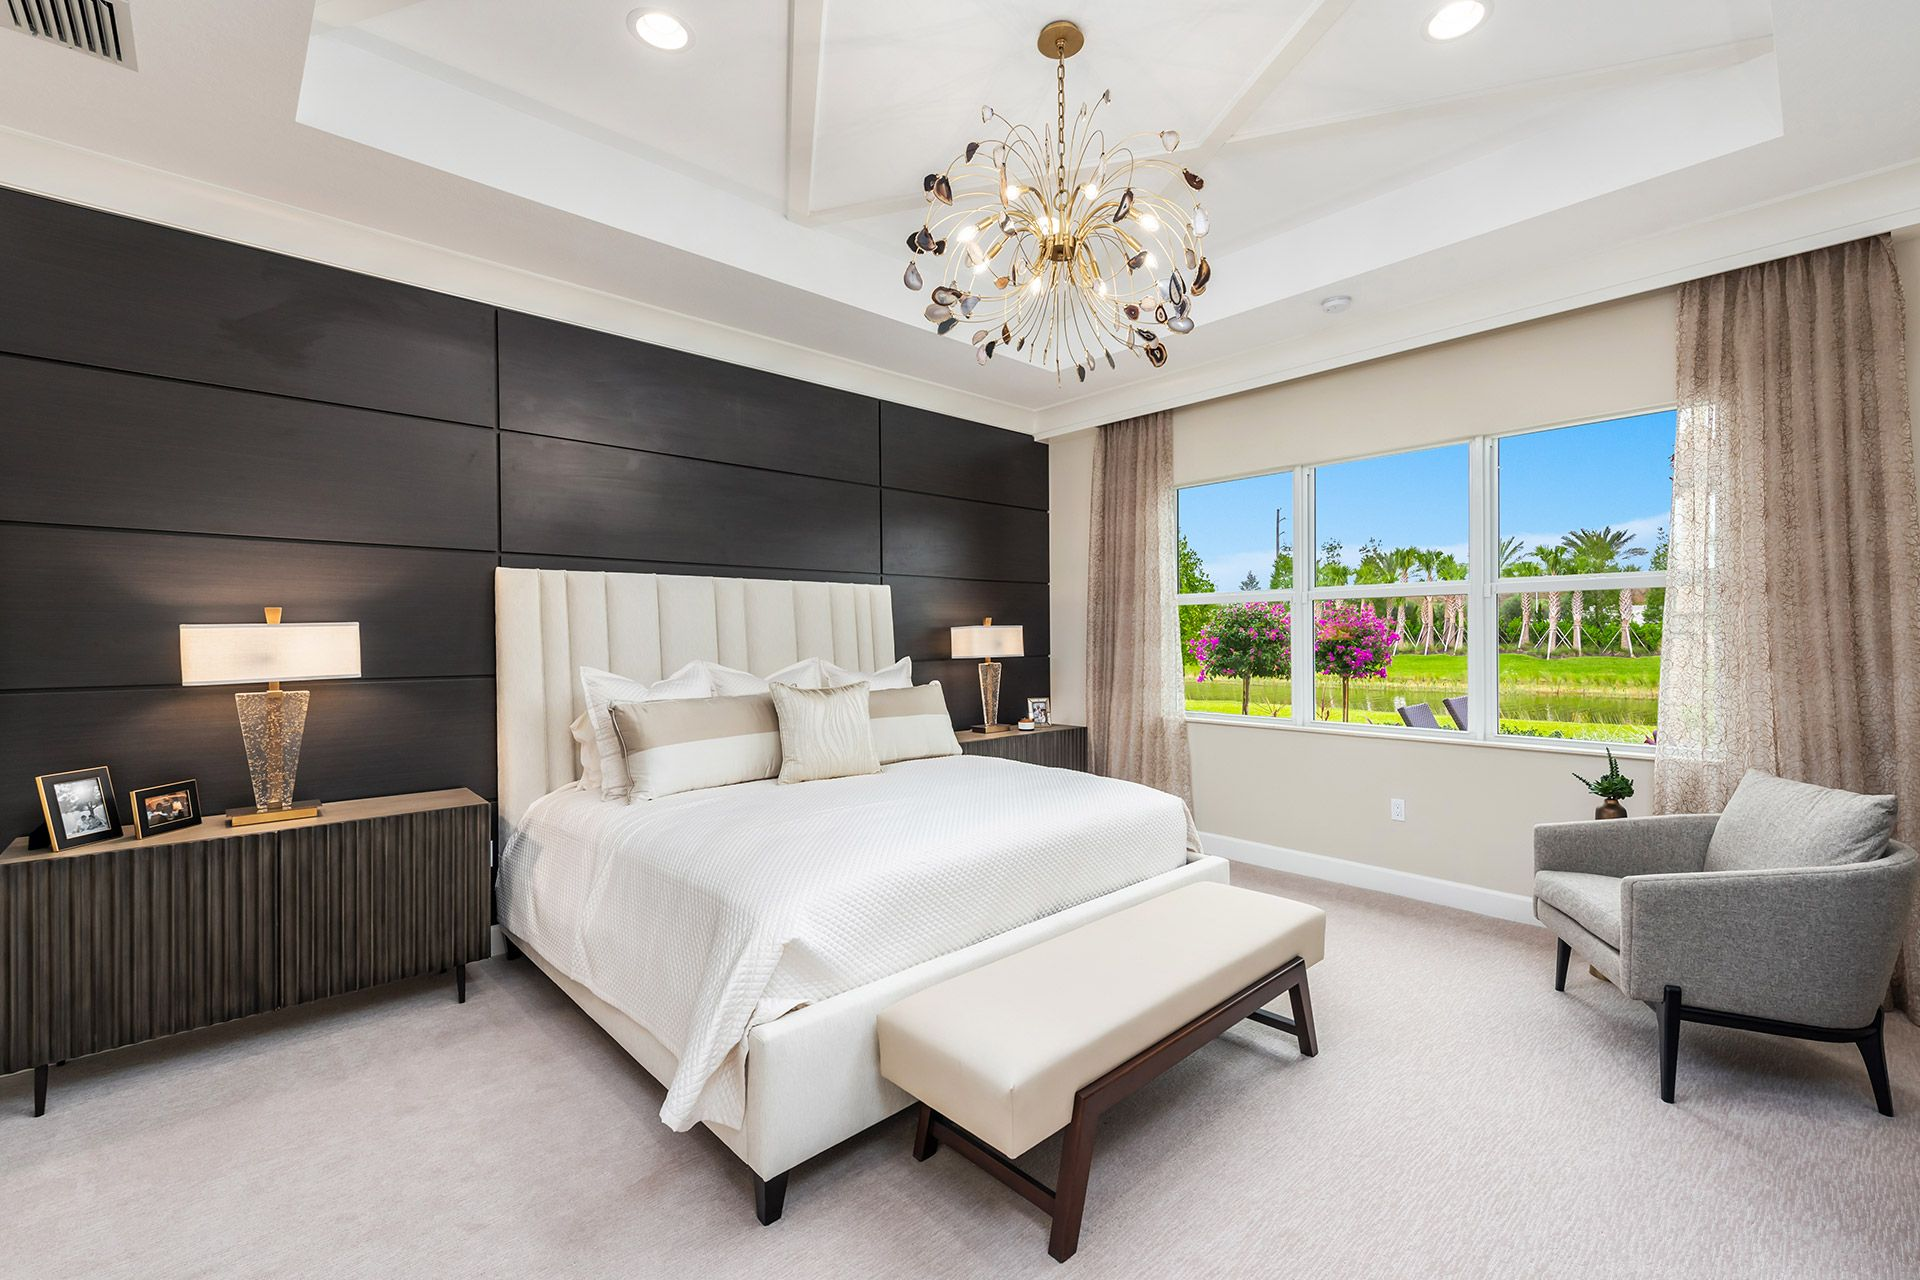 Bedroom featured in the Sunrise By GL Homes in Naples, FL